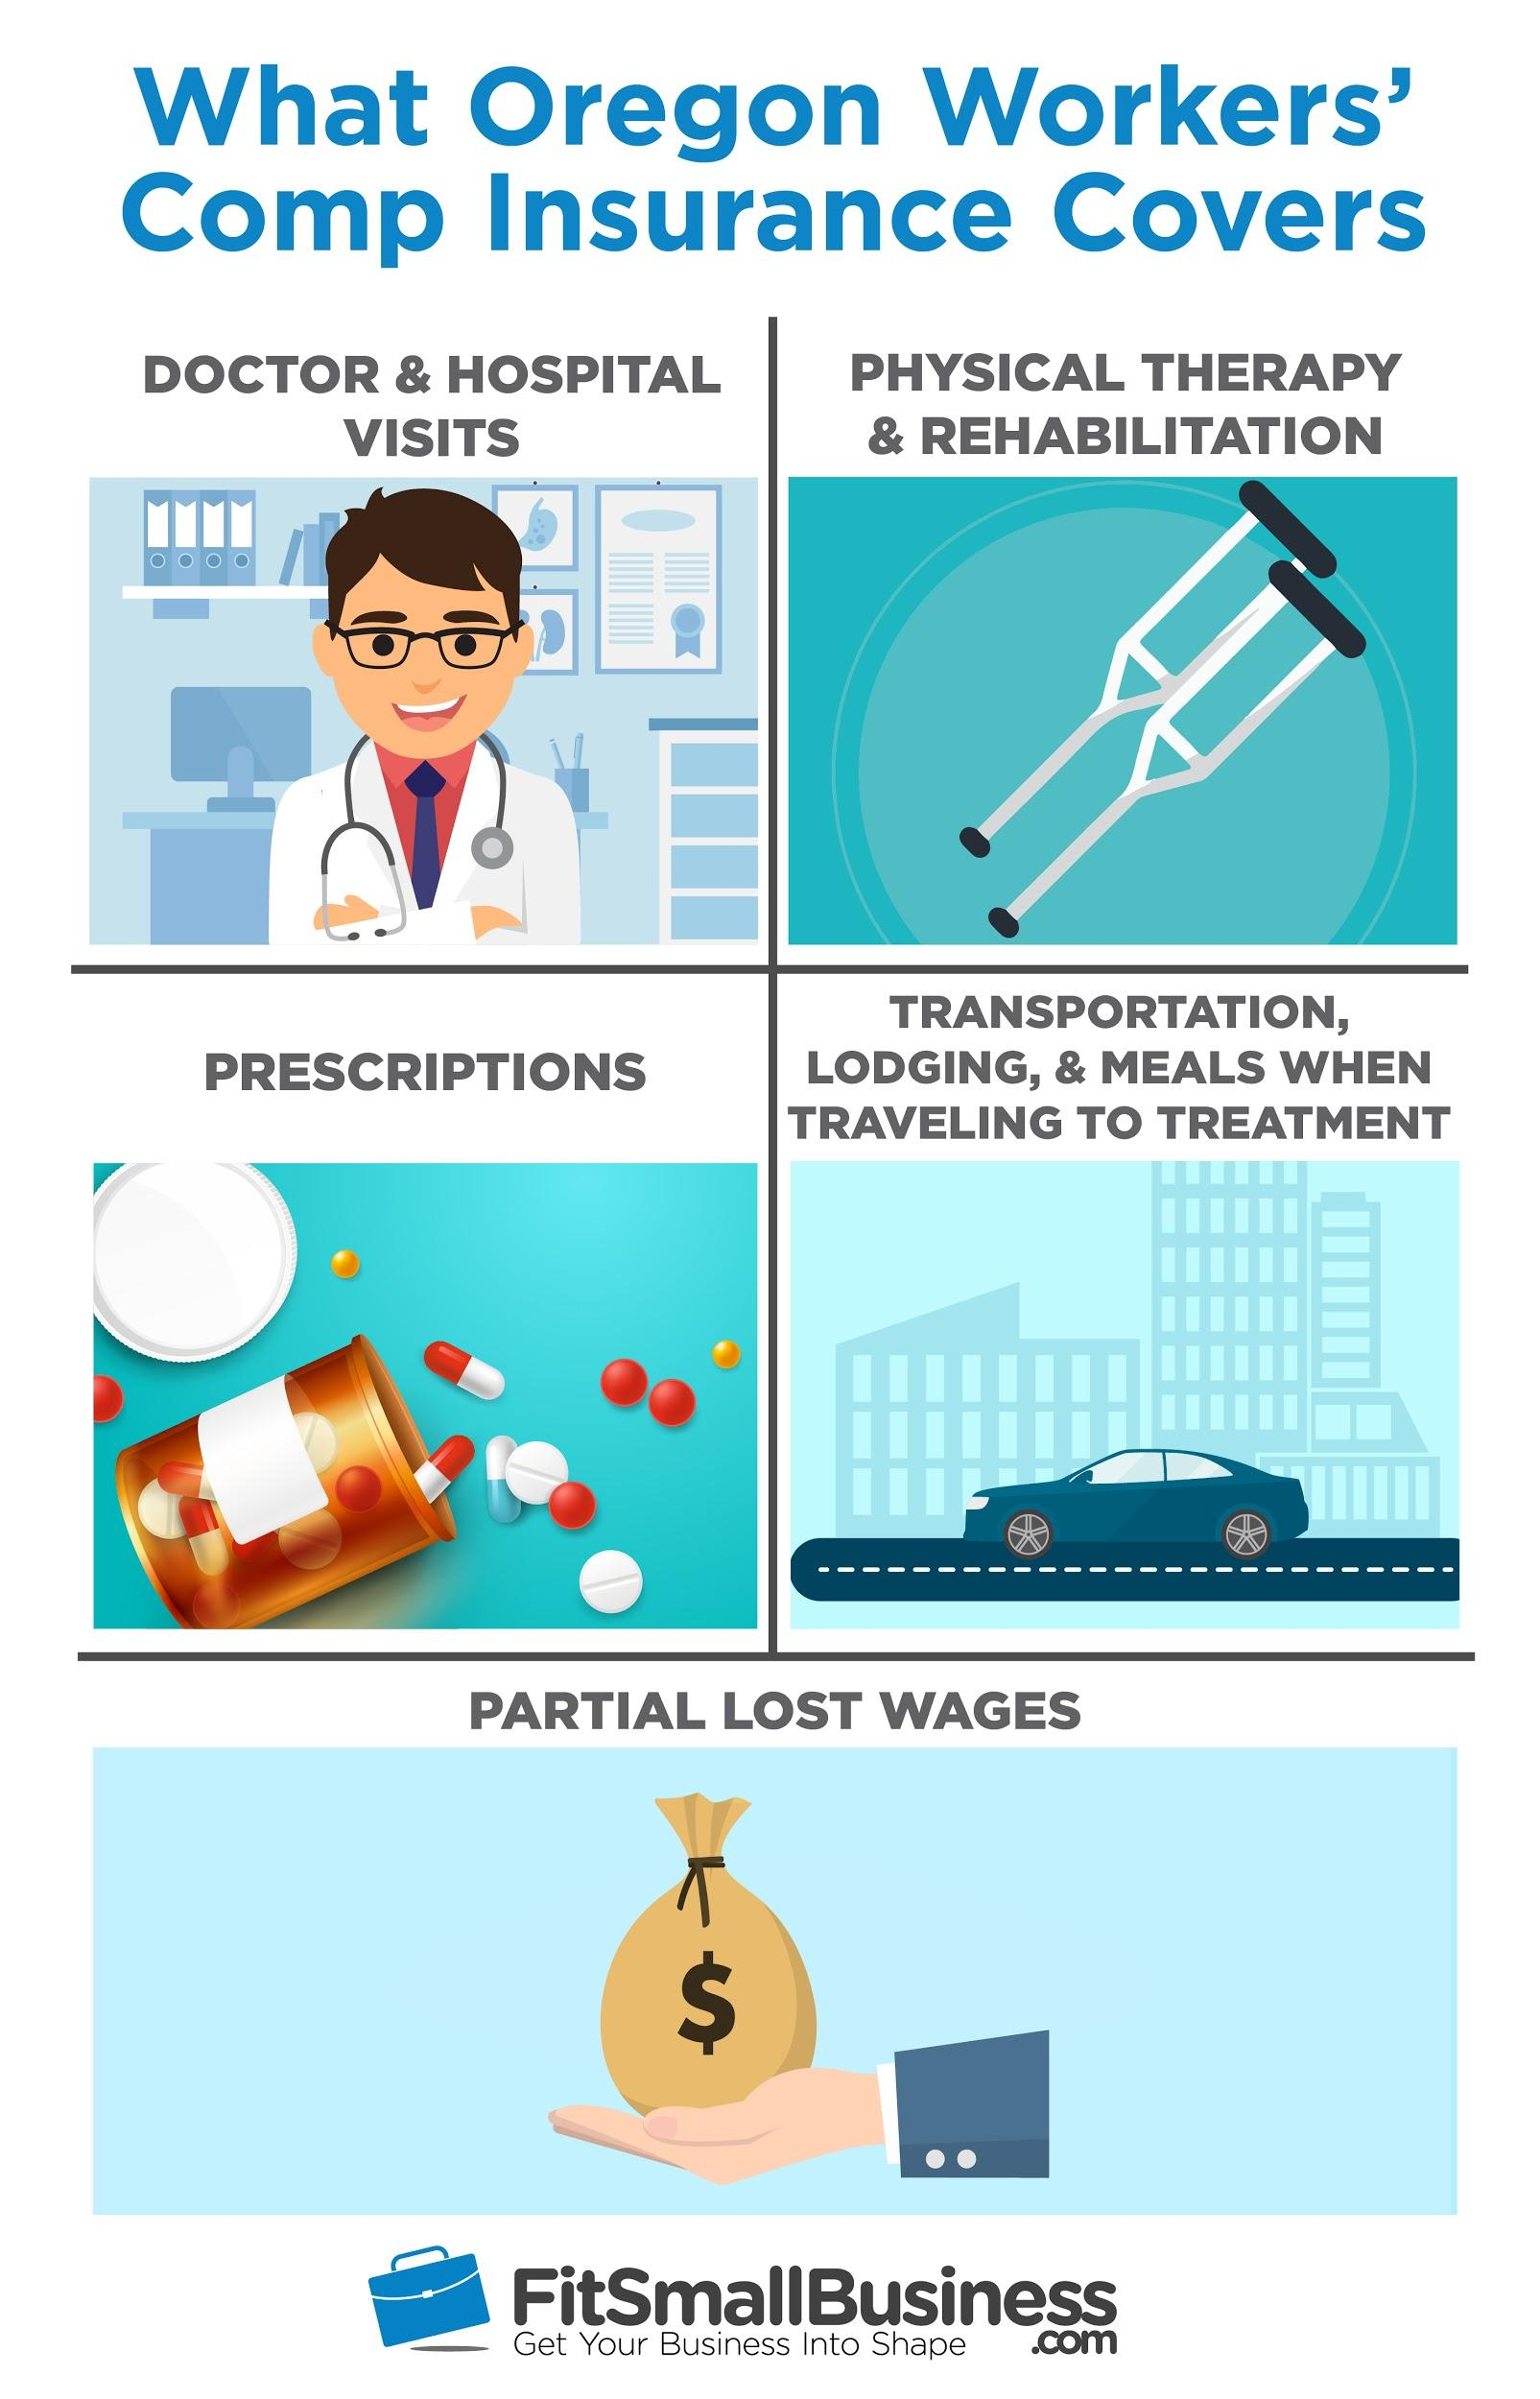 infographic displaying doctor, prescription pills, walking canes, transportation, and money bag